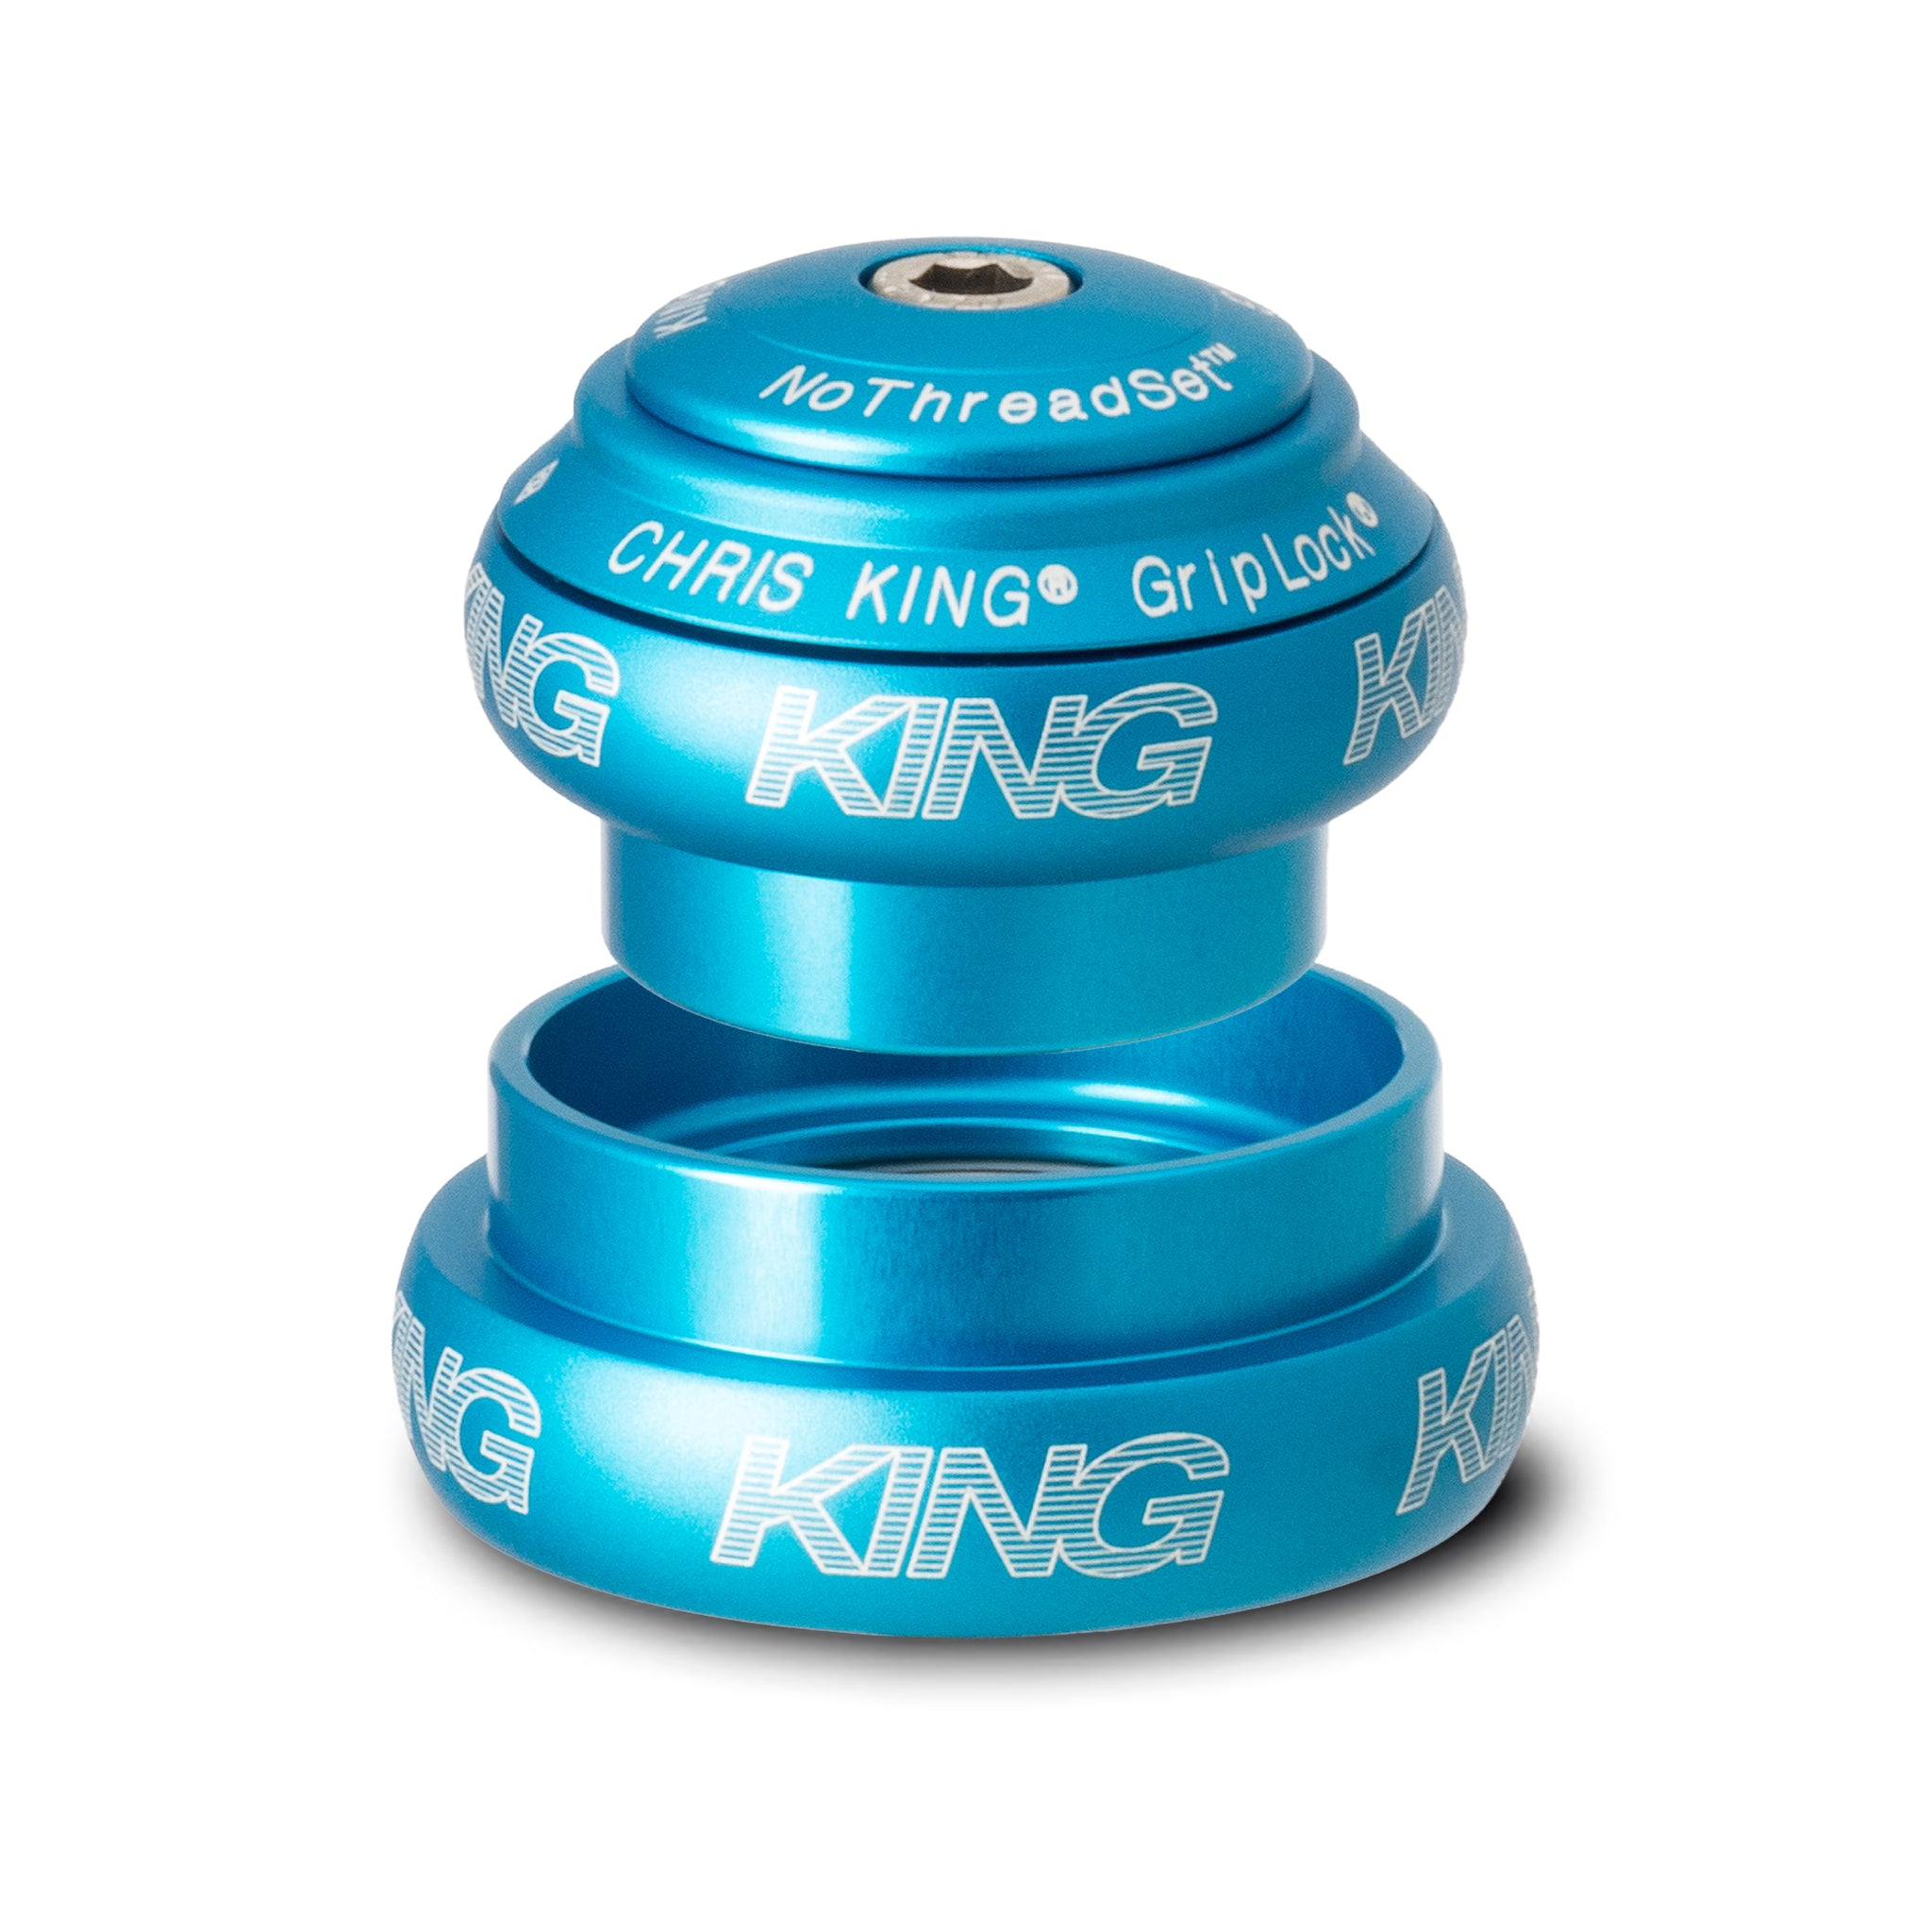 Chris King Inset 3 Headset Zs44 Ec49 Tapered Gold Green